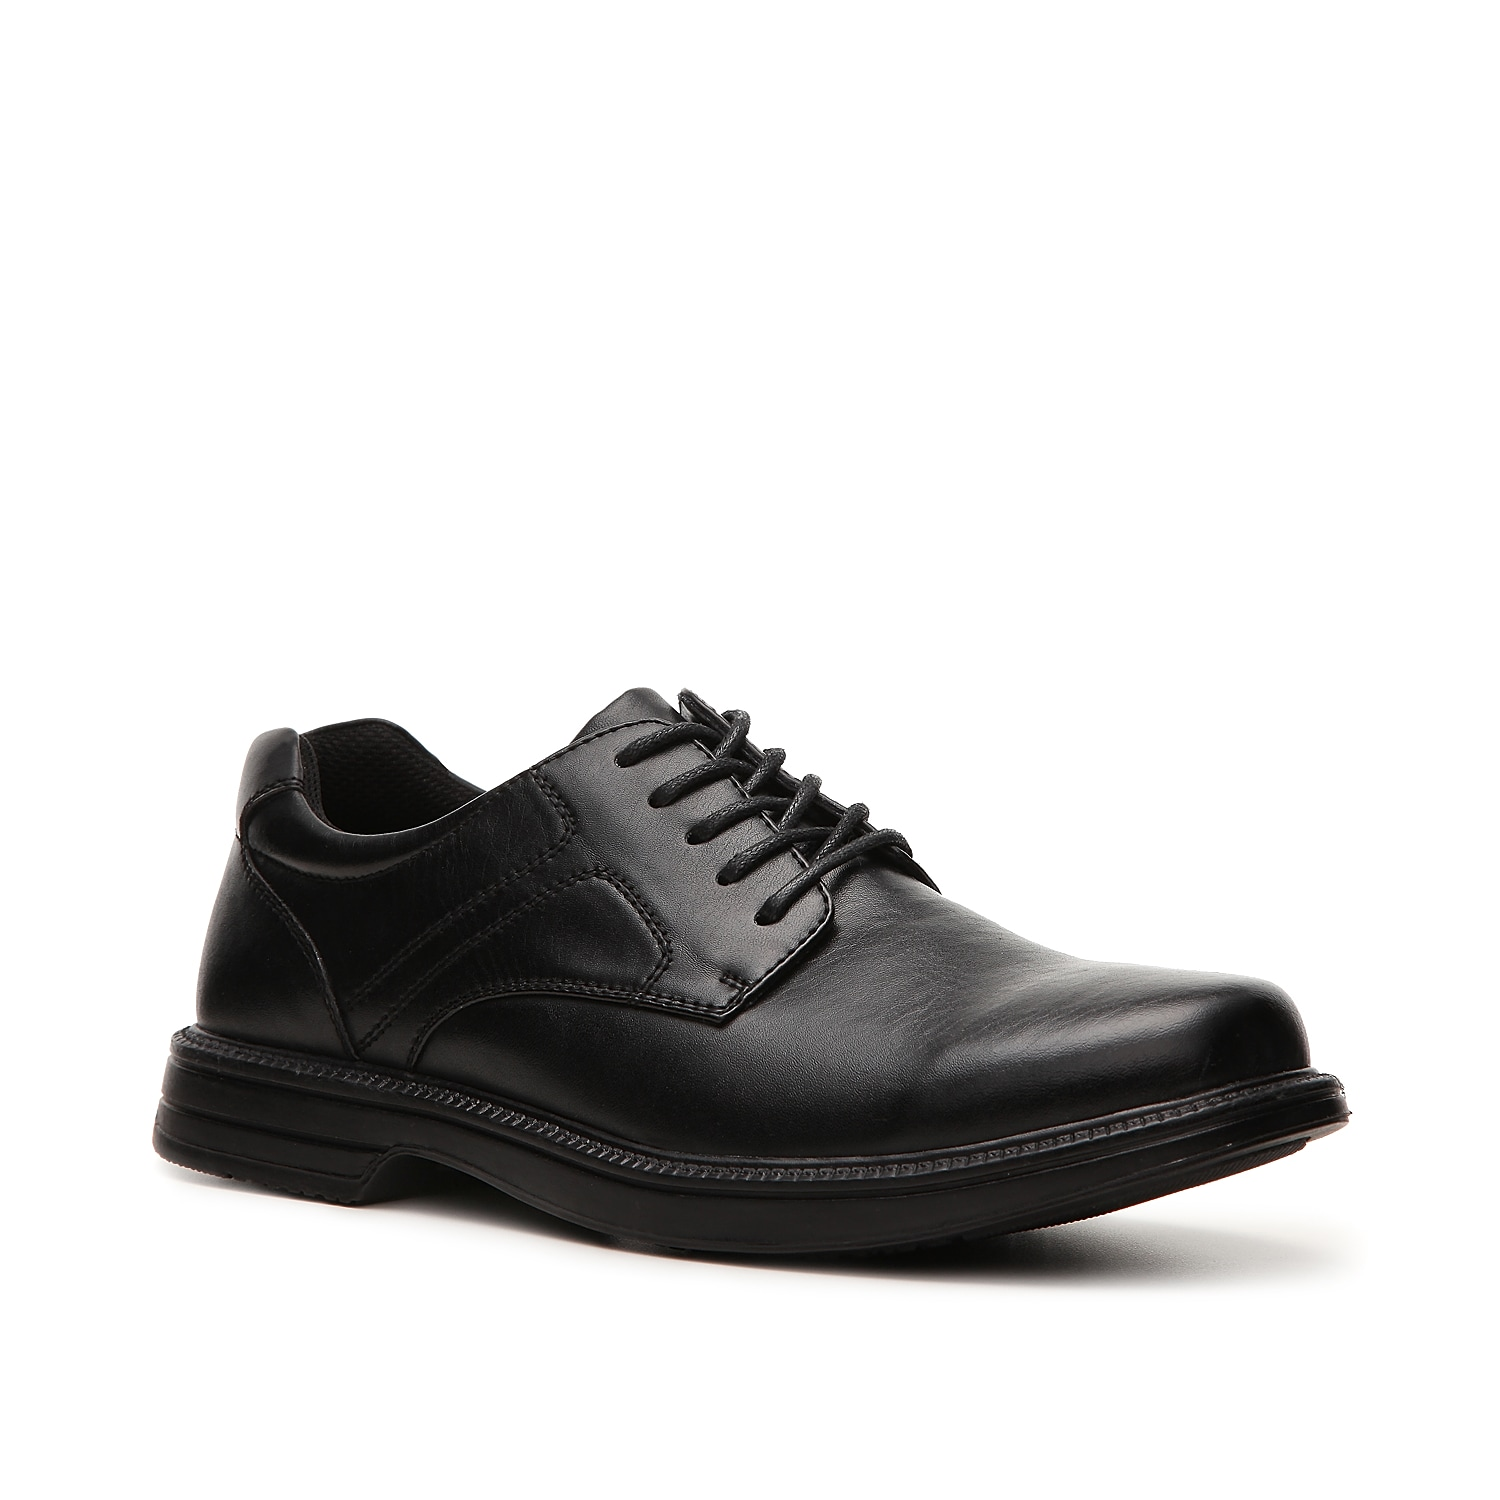 Extremely versatile and comfortable, the Nu Times oxford from Deer Stags will take you just about anywhere you want to go! This waterproof leather shoe features a S.u.p.r.o. Sock® footbed with memory foam cushioning to provide exceptional comfort.